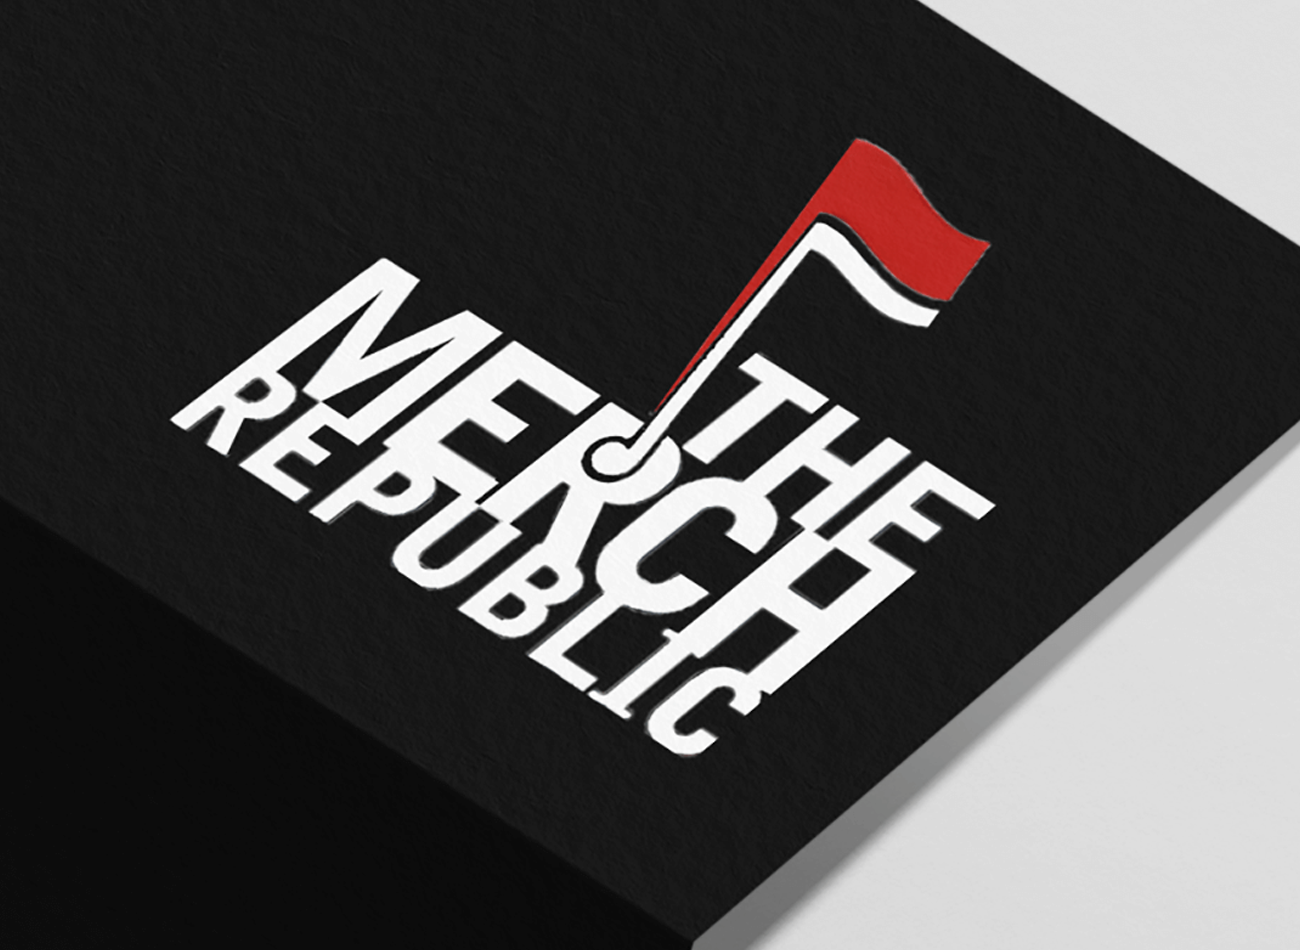 the-merch-republic-iconic-logo-designers-agent-orange-south-african-creative-agency-paper.png